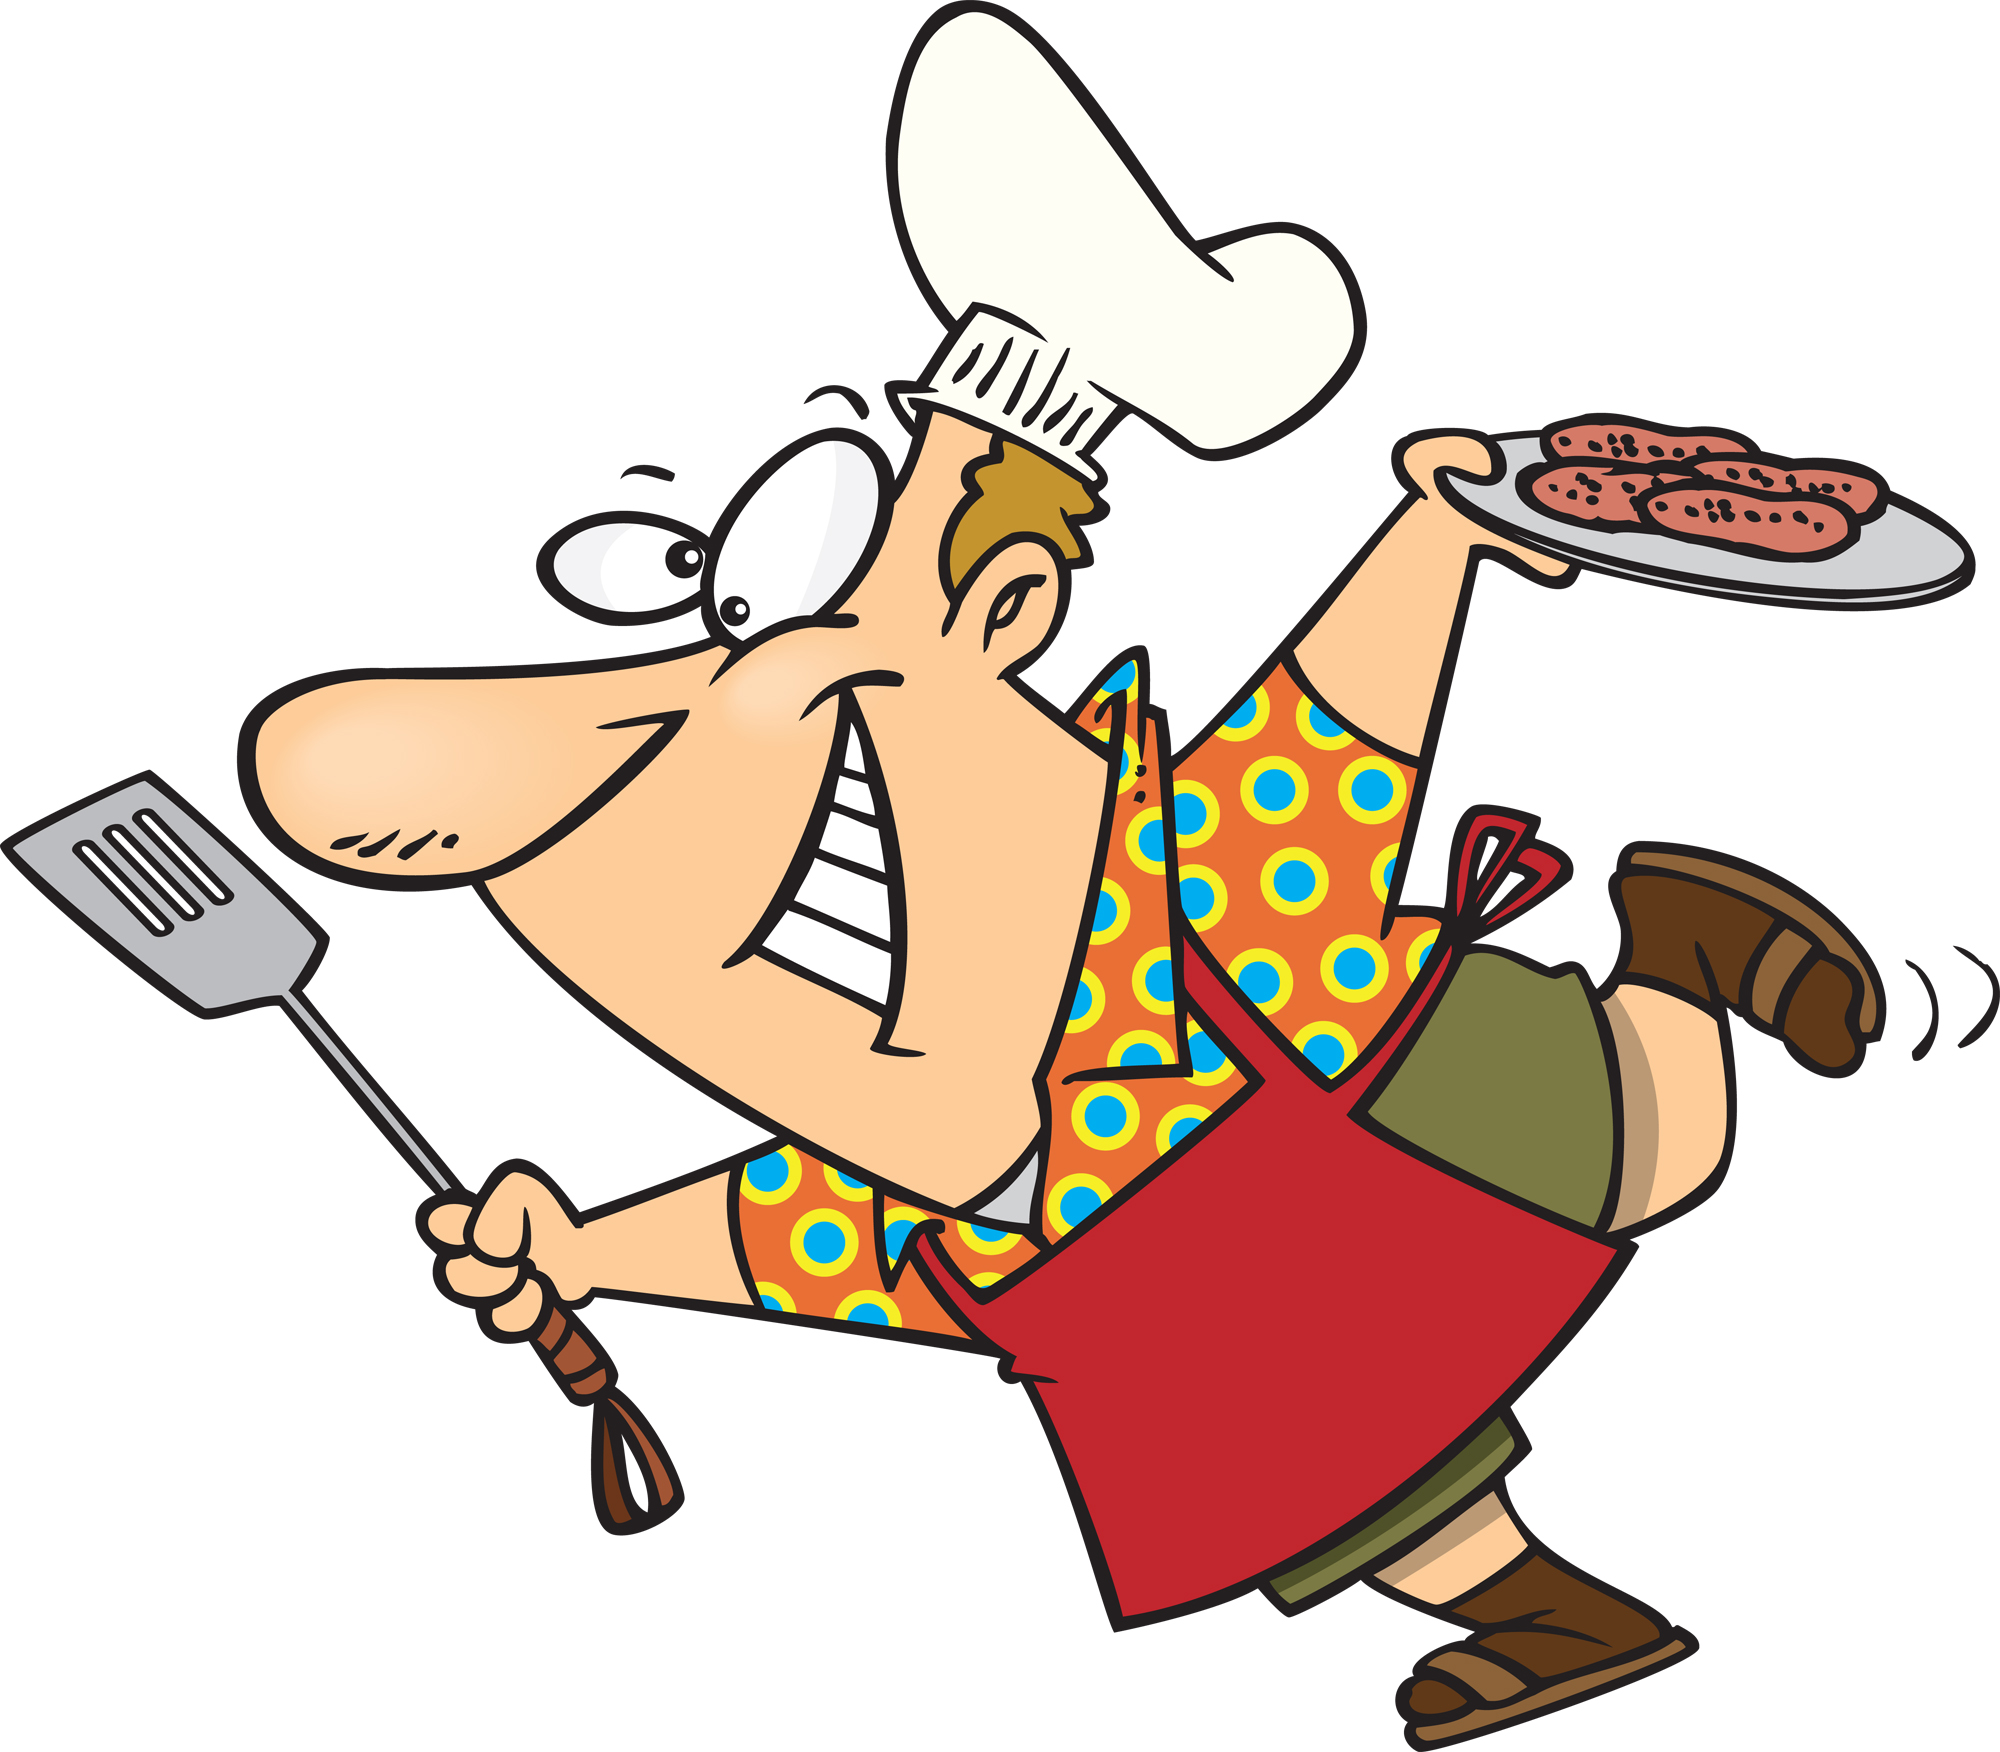 Barbecue clipart bbq chef Guy Barbecue Collection Onder Turaci